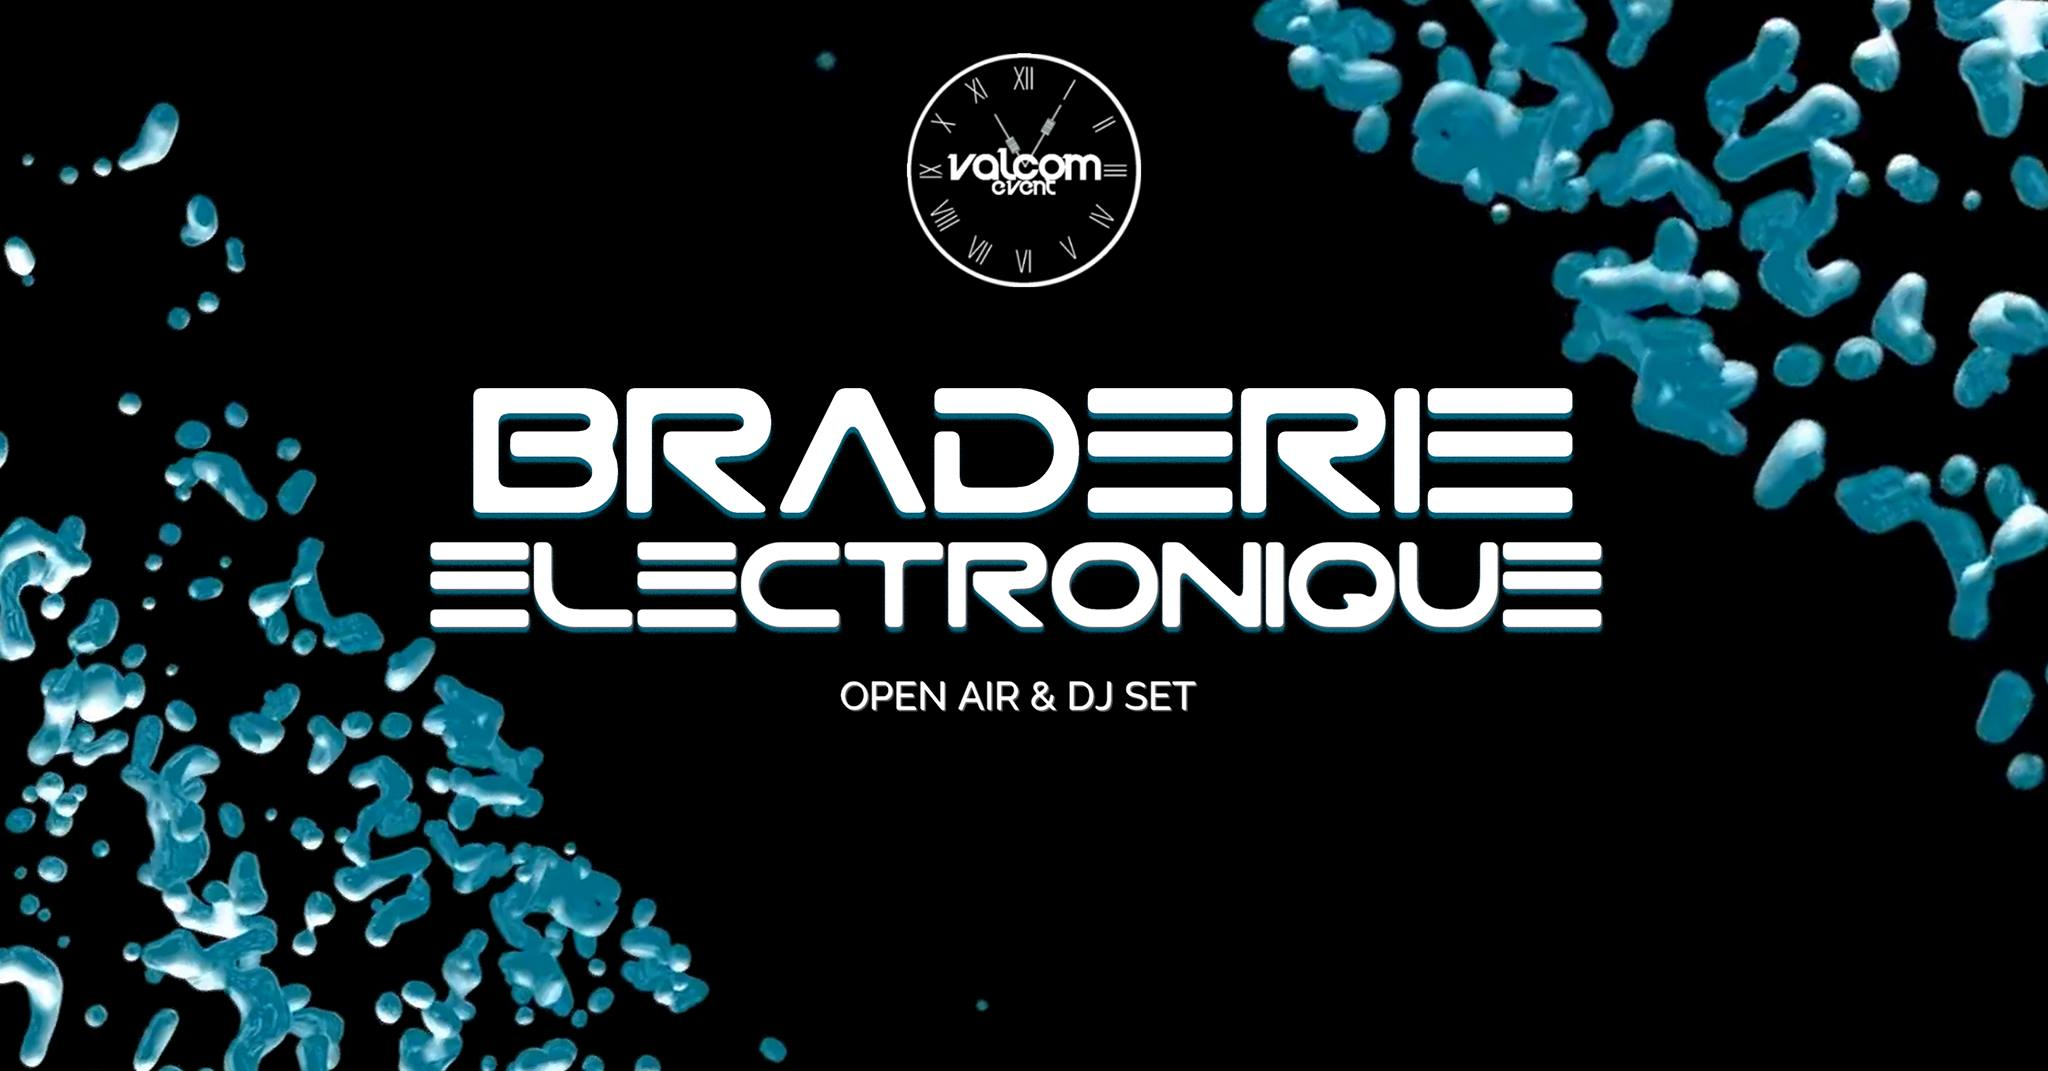 La Braderie Electronique en open air